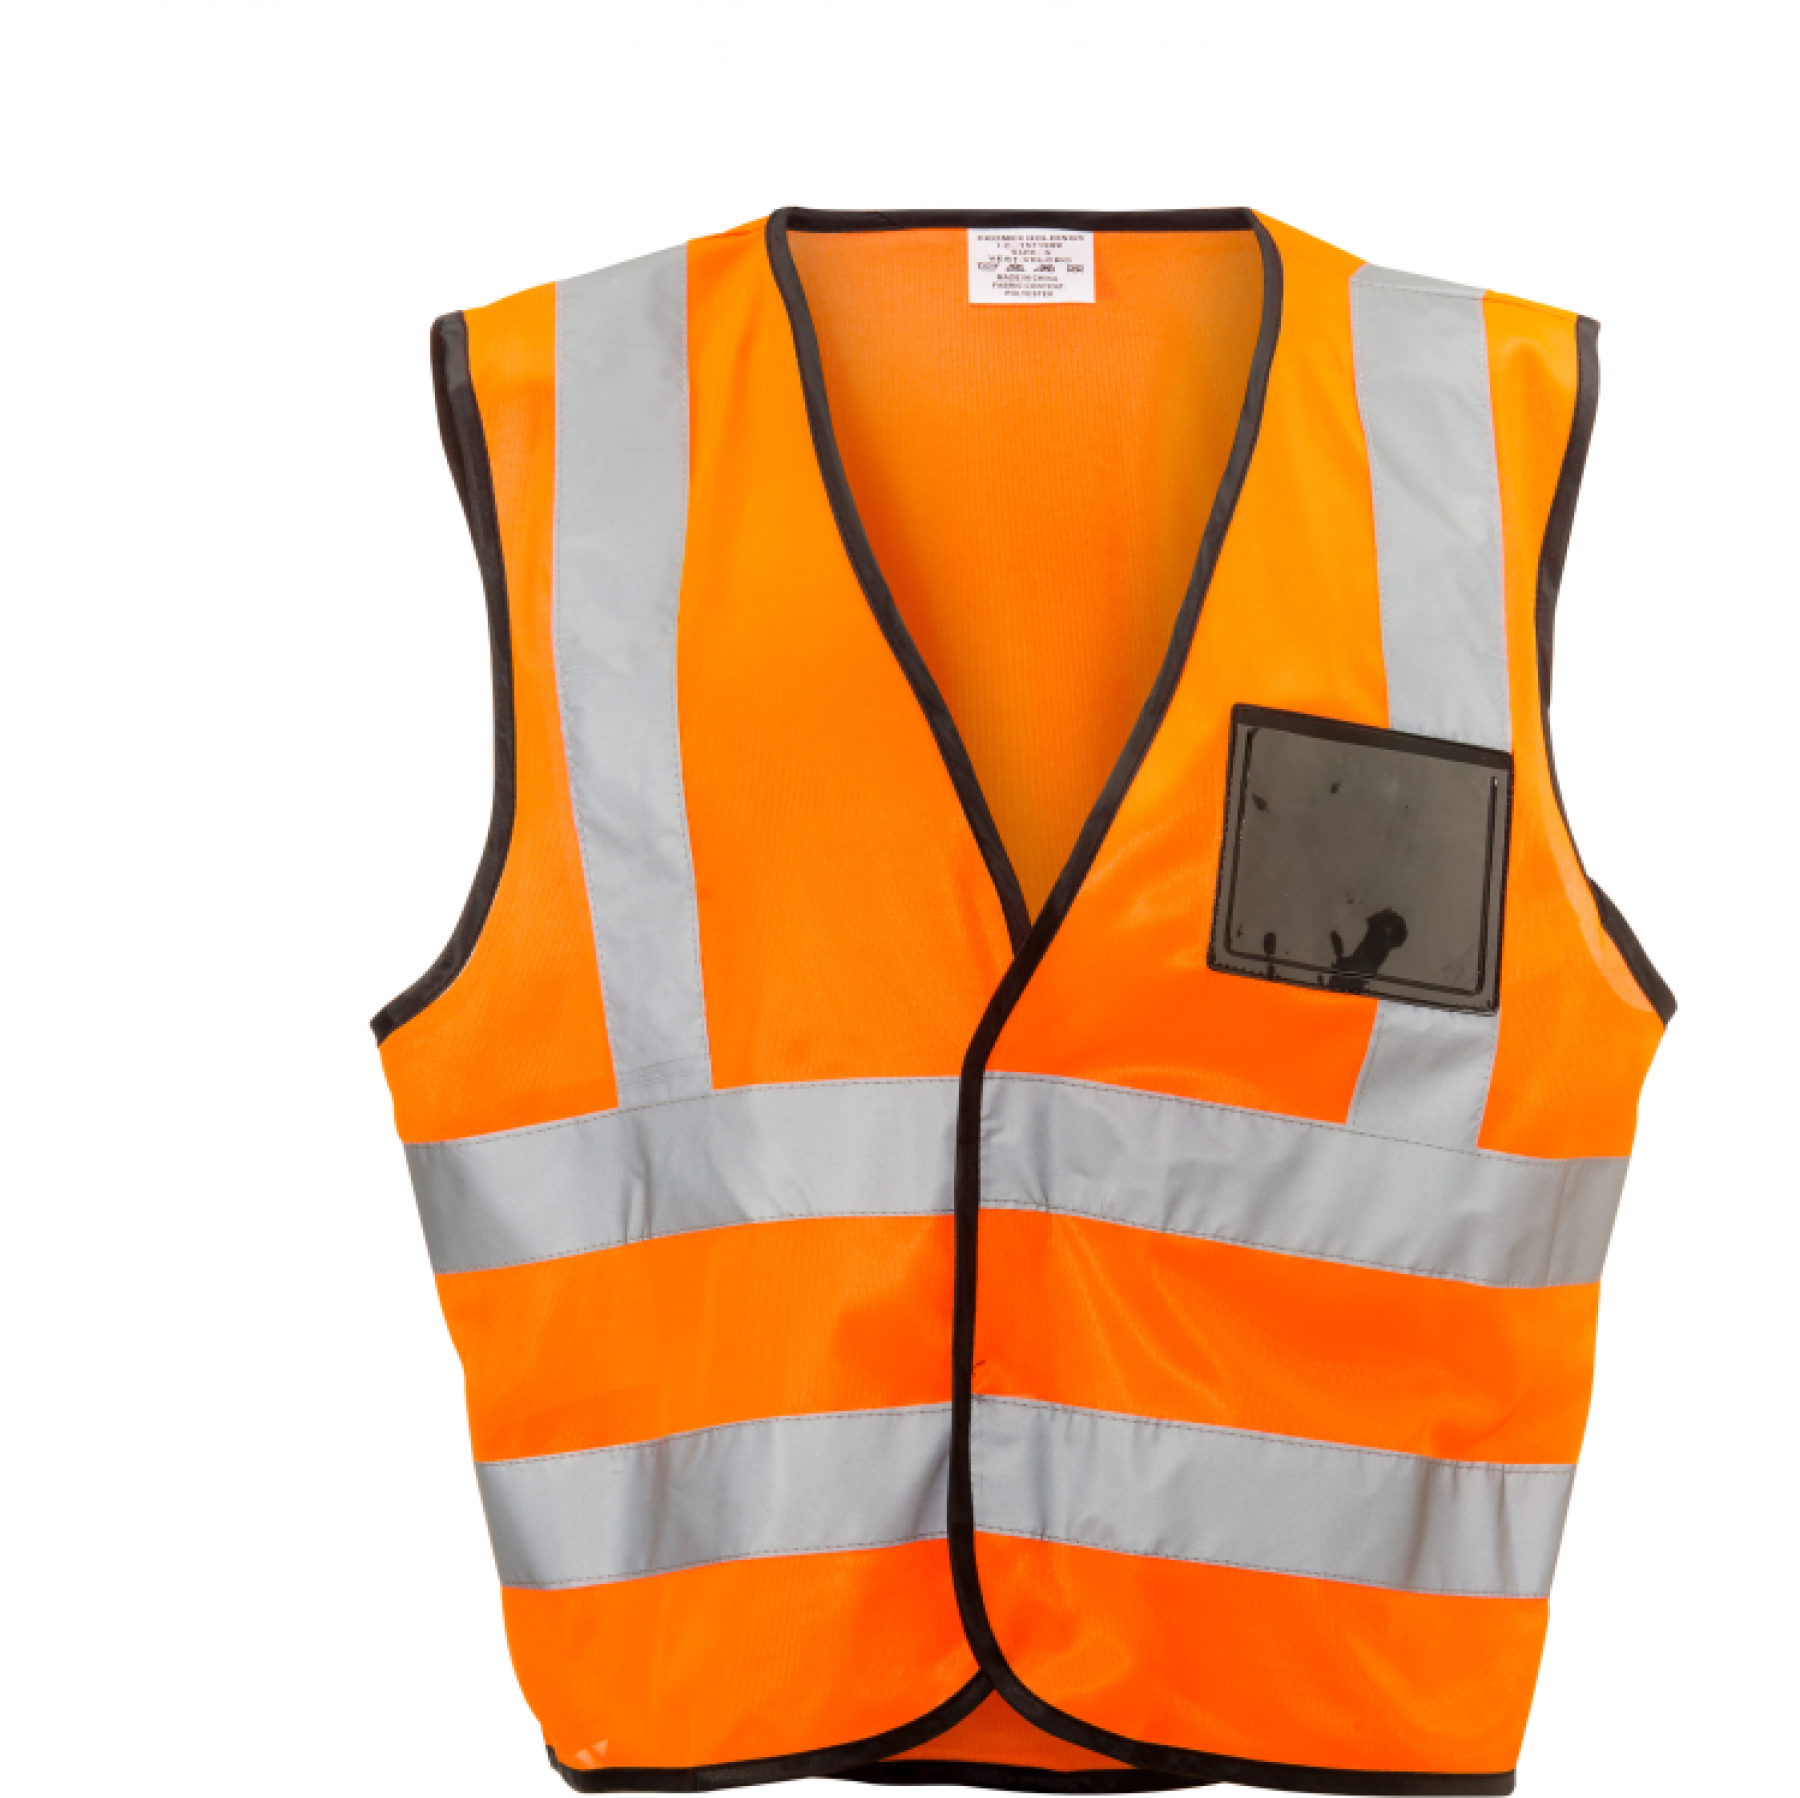 Orange Reflective Vest, Velcro, Id Pouch 2x Large